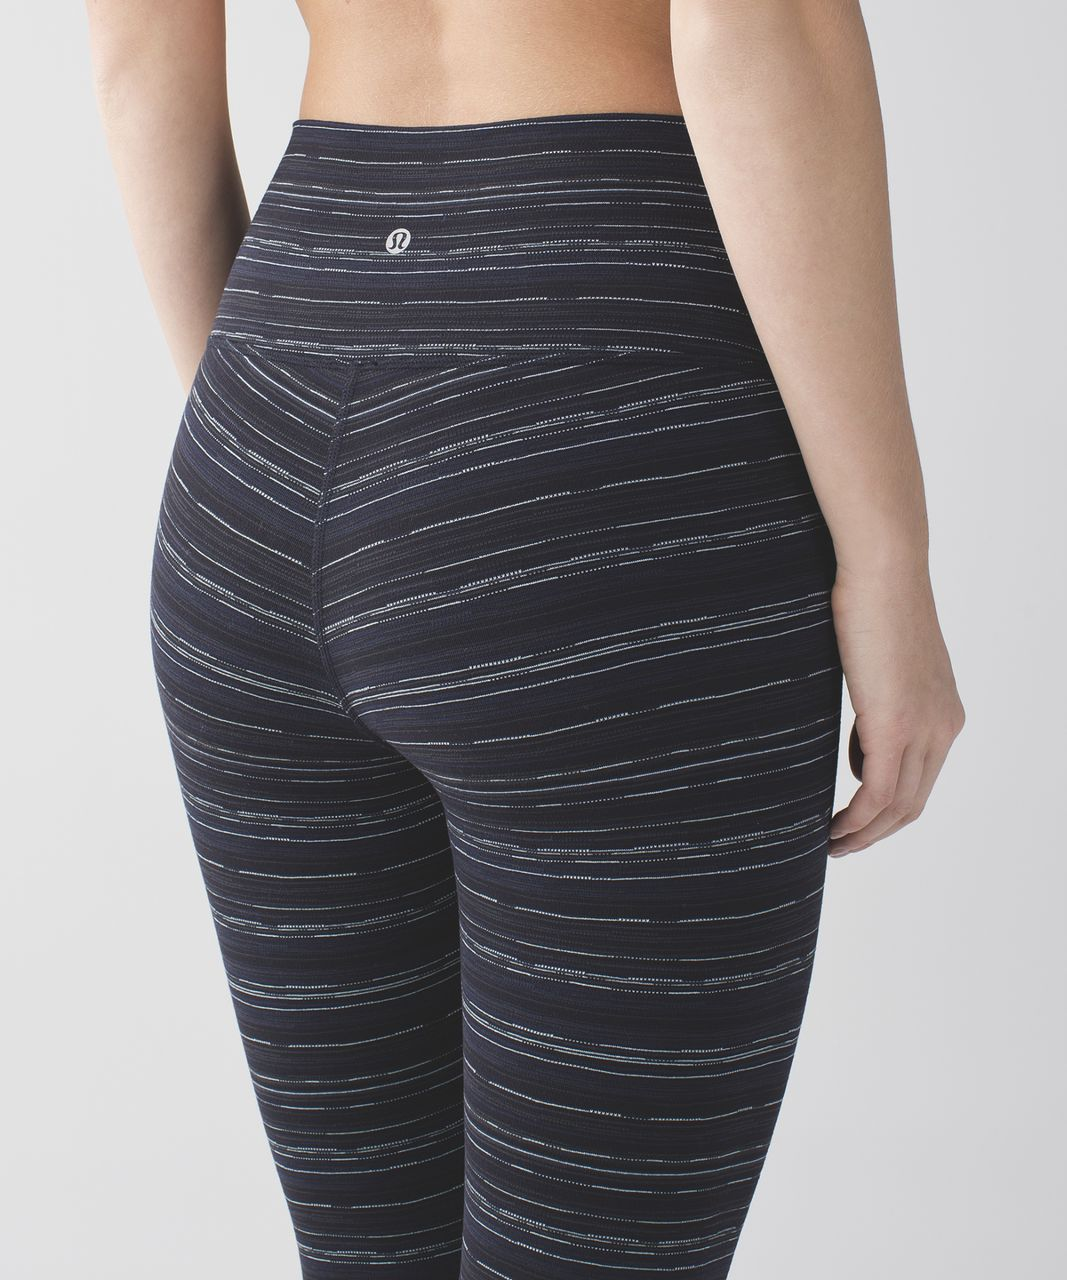 Lululemon High Times Pant - Cyber Stripe Naval Blue Black